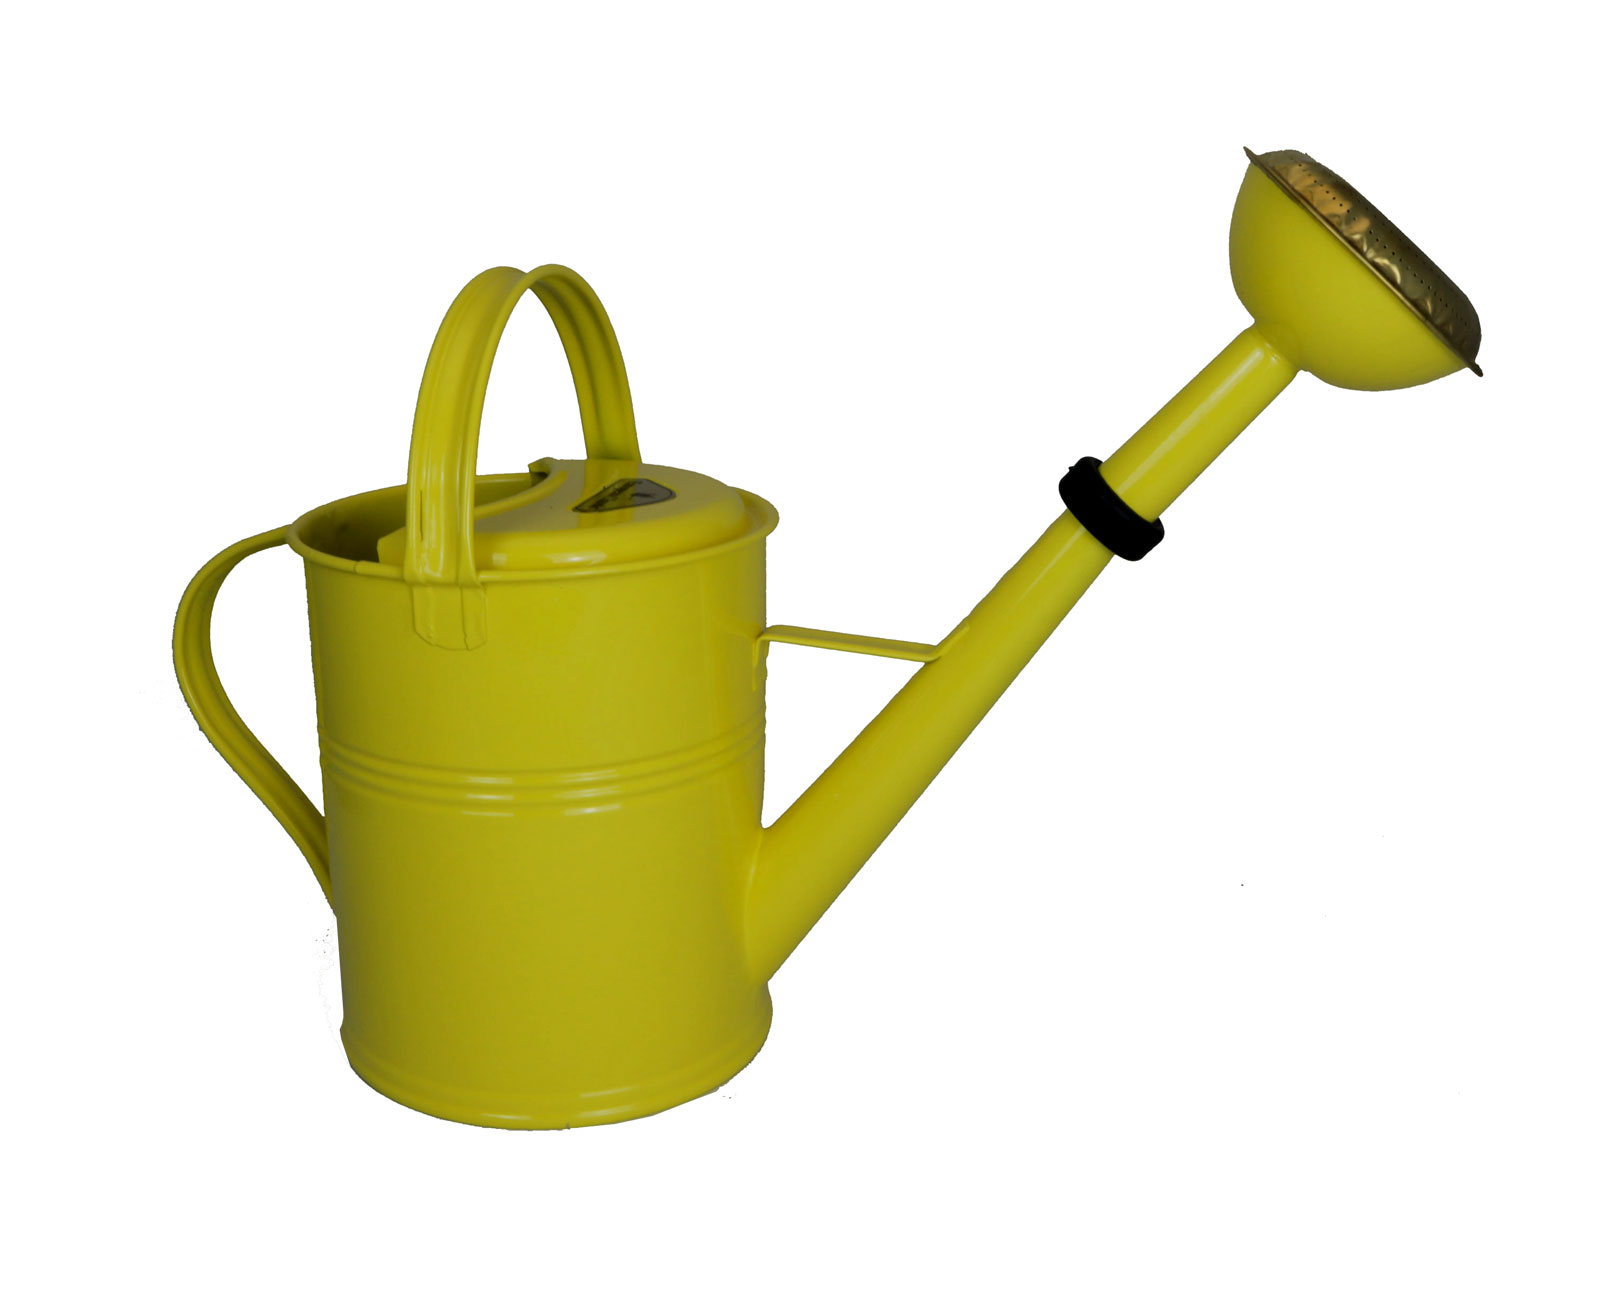 Galvanized Watering Cans Yellow Classic Round Galvanized Watering Can 1 25 Gallon